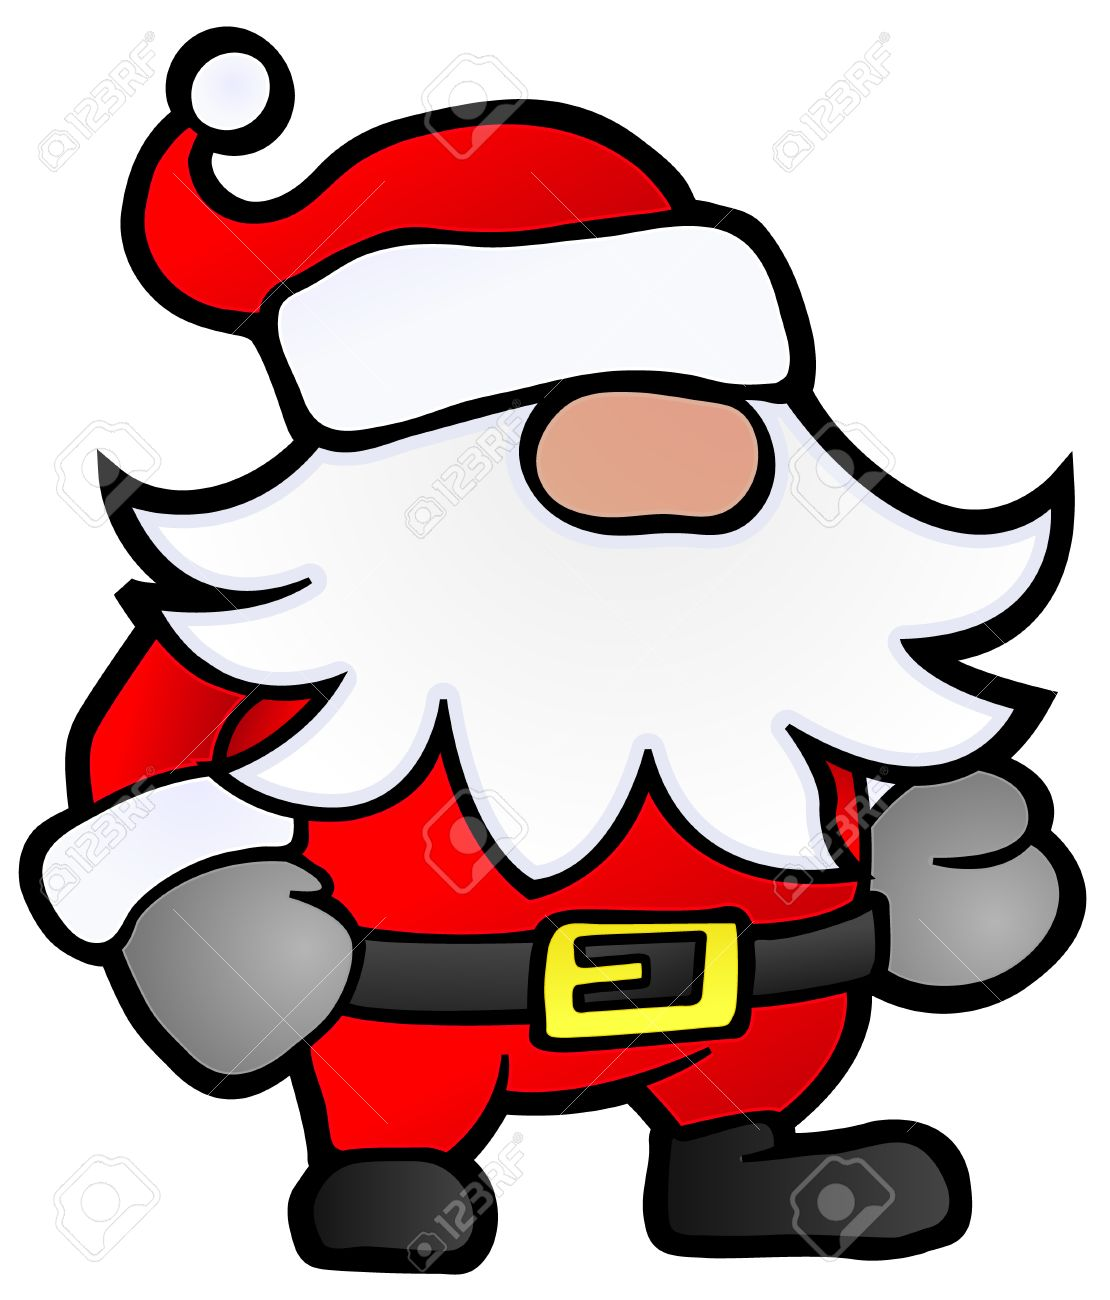 1110x1300 Small Santa Claus Cartoon, Stylized Christmas Illustration